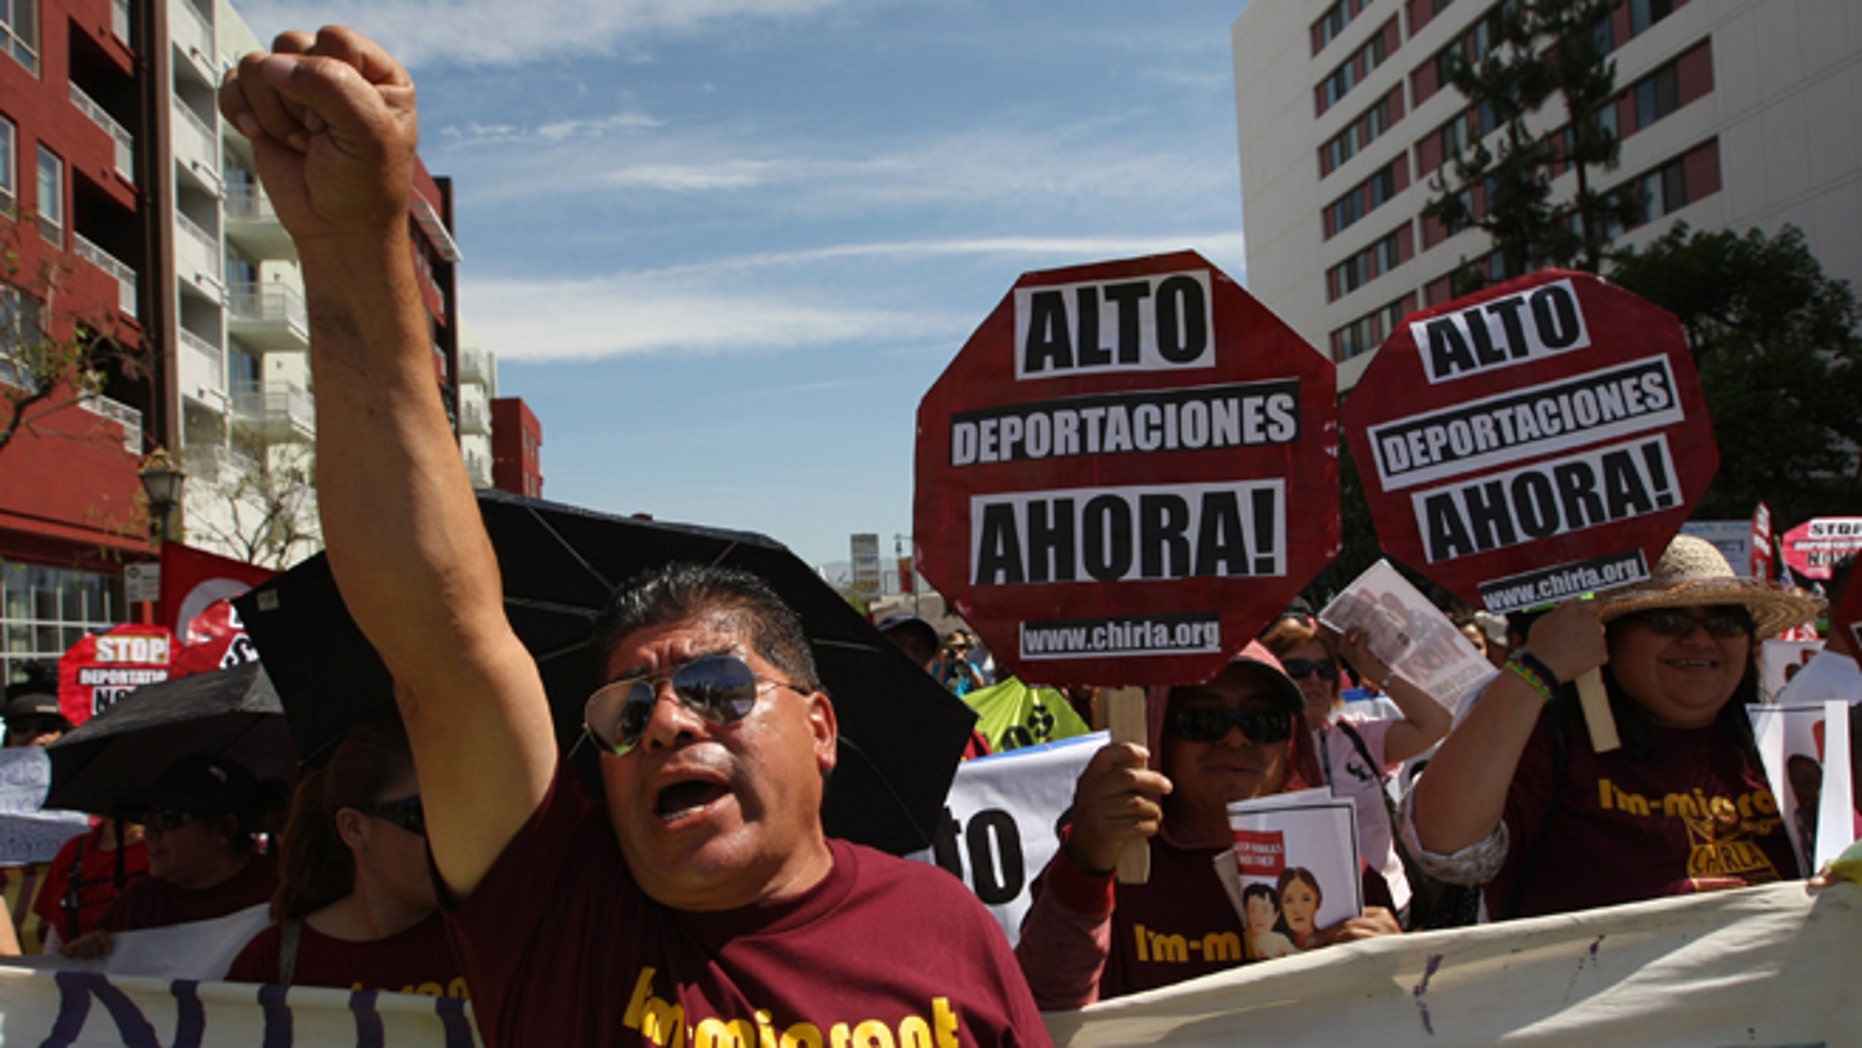 LOS ANGELES, CA - MAY 1:  People rally in one a several May Day immigration-themed events on May 1, 2014 in Los Angeles, California. Demonstrators are calling for immigration reform and an end to deportations of undocumented residents.  (Photo by David McNew/Getty Images)